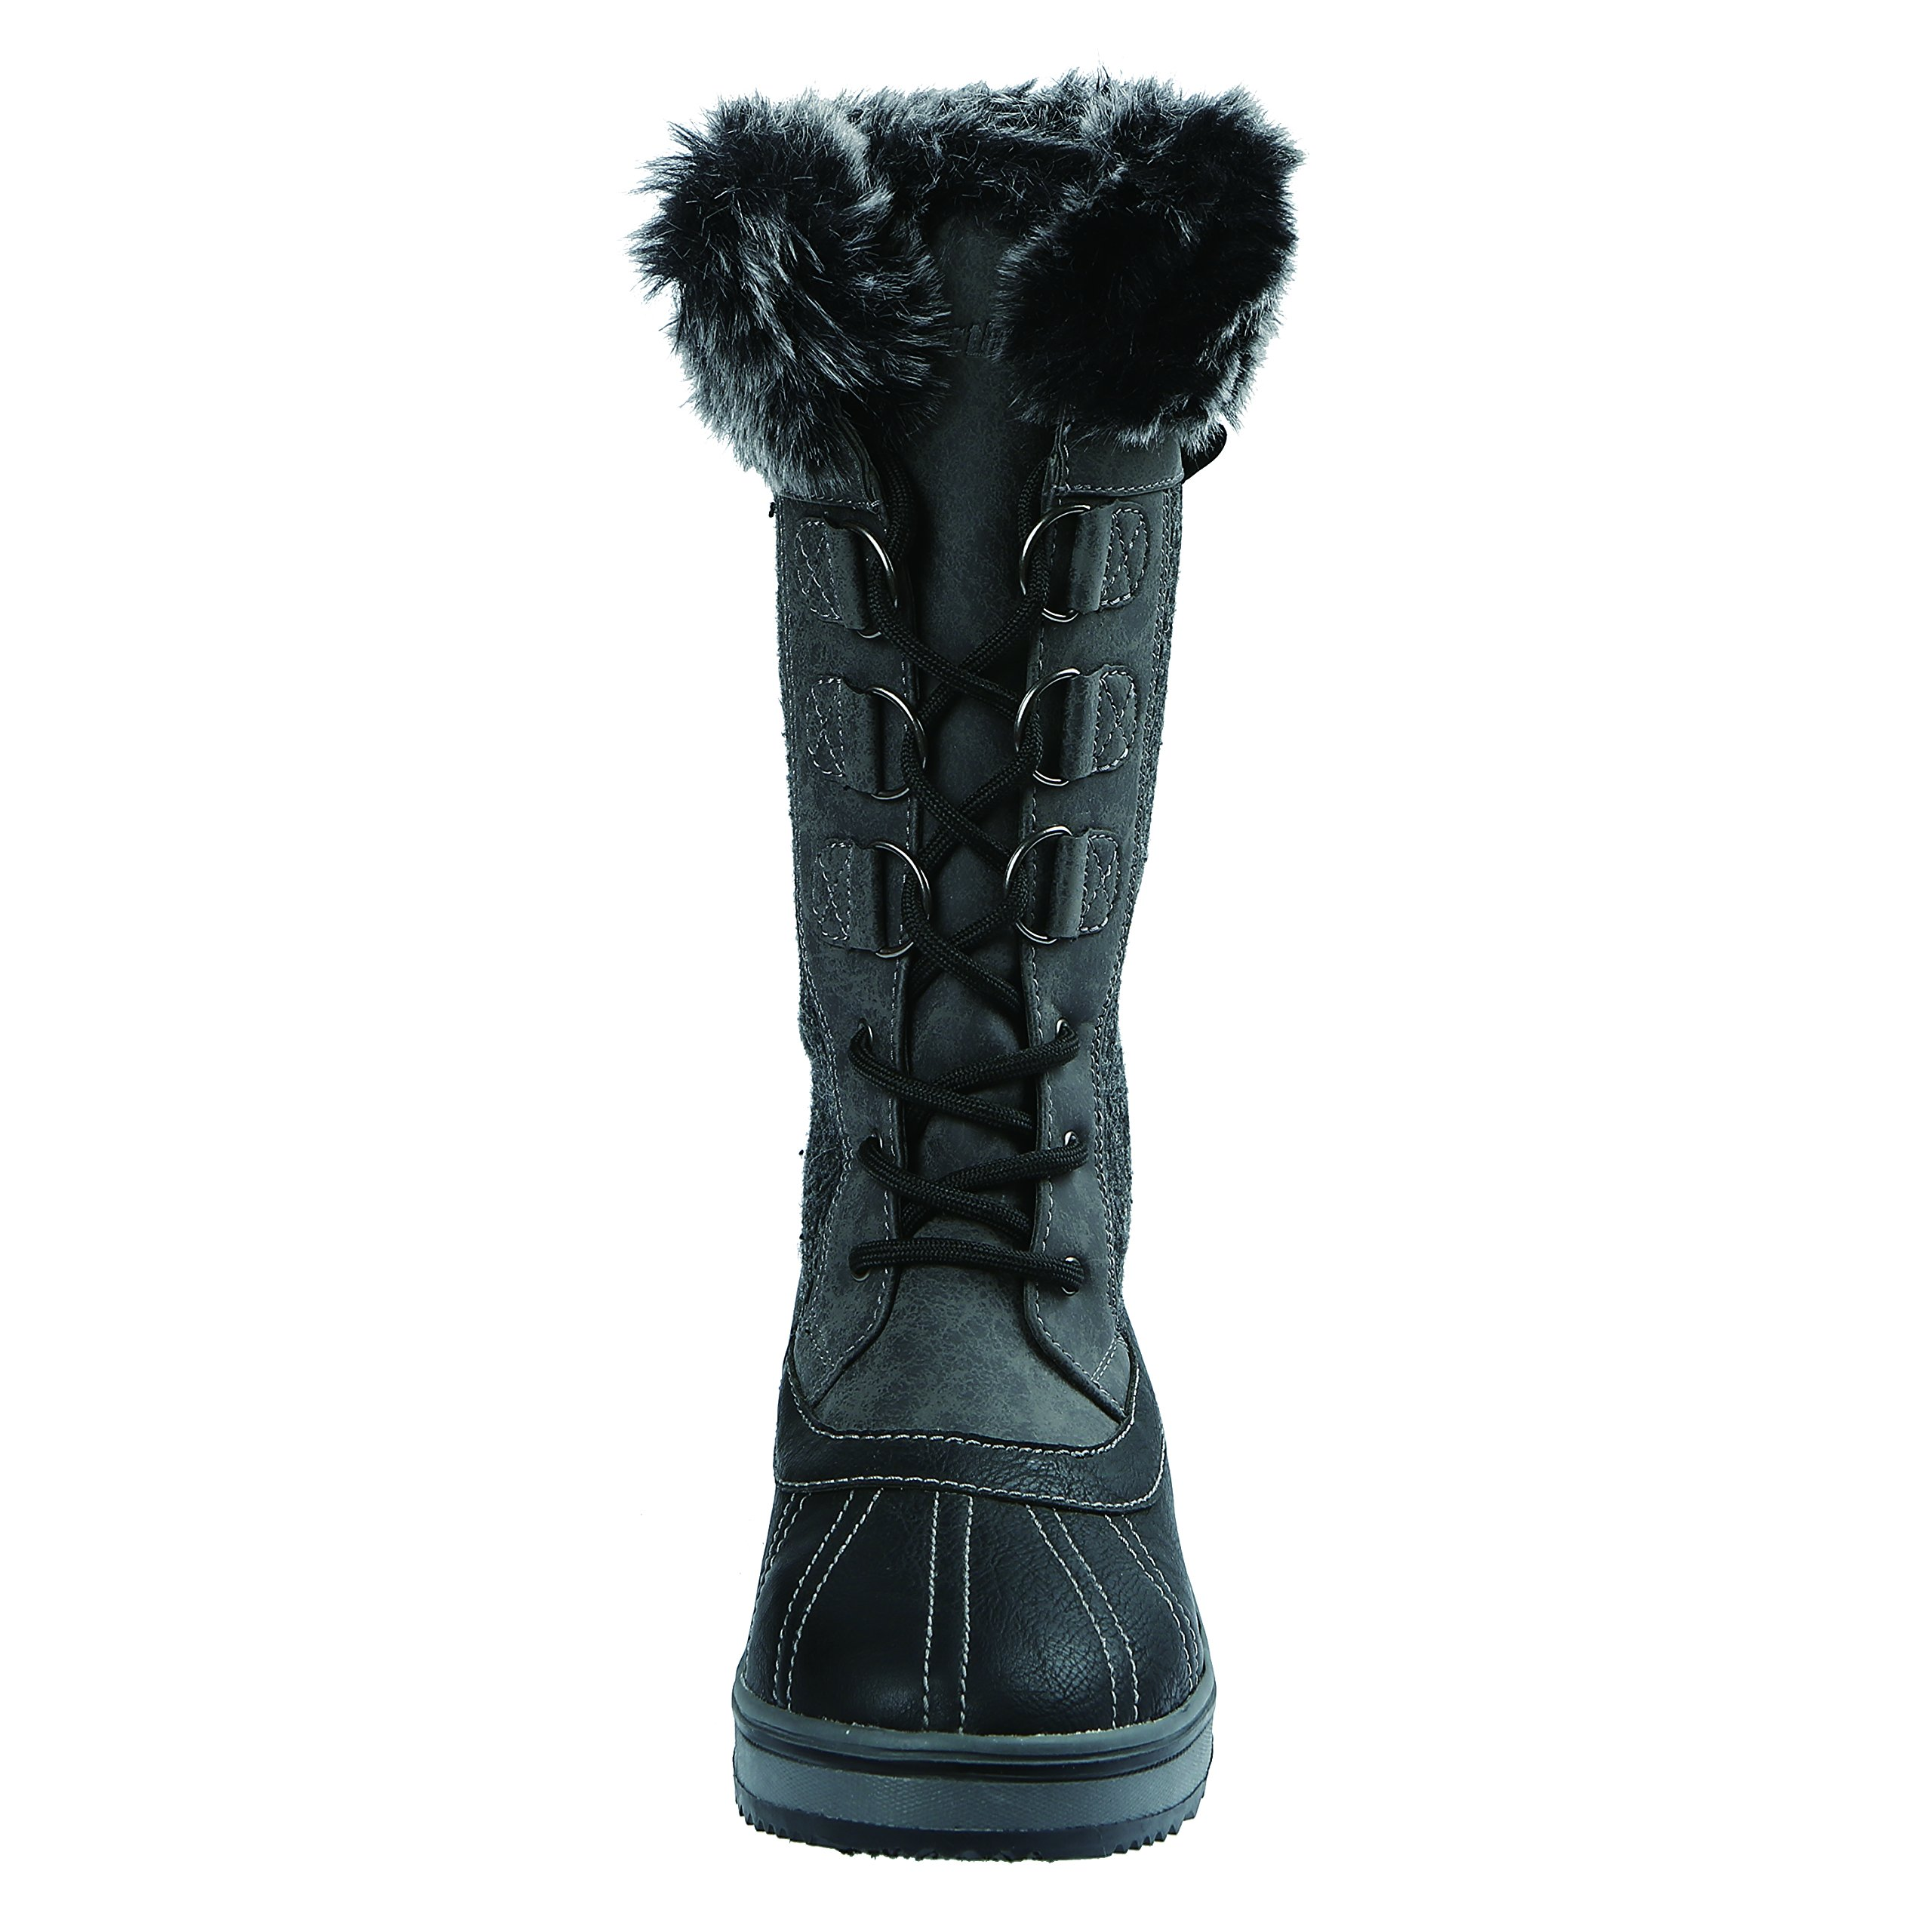 Northside Women's Bishop Snow Boot, Charcoal, 10 M US by Northside (Image #3)